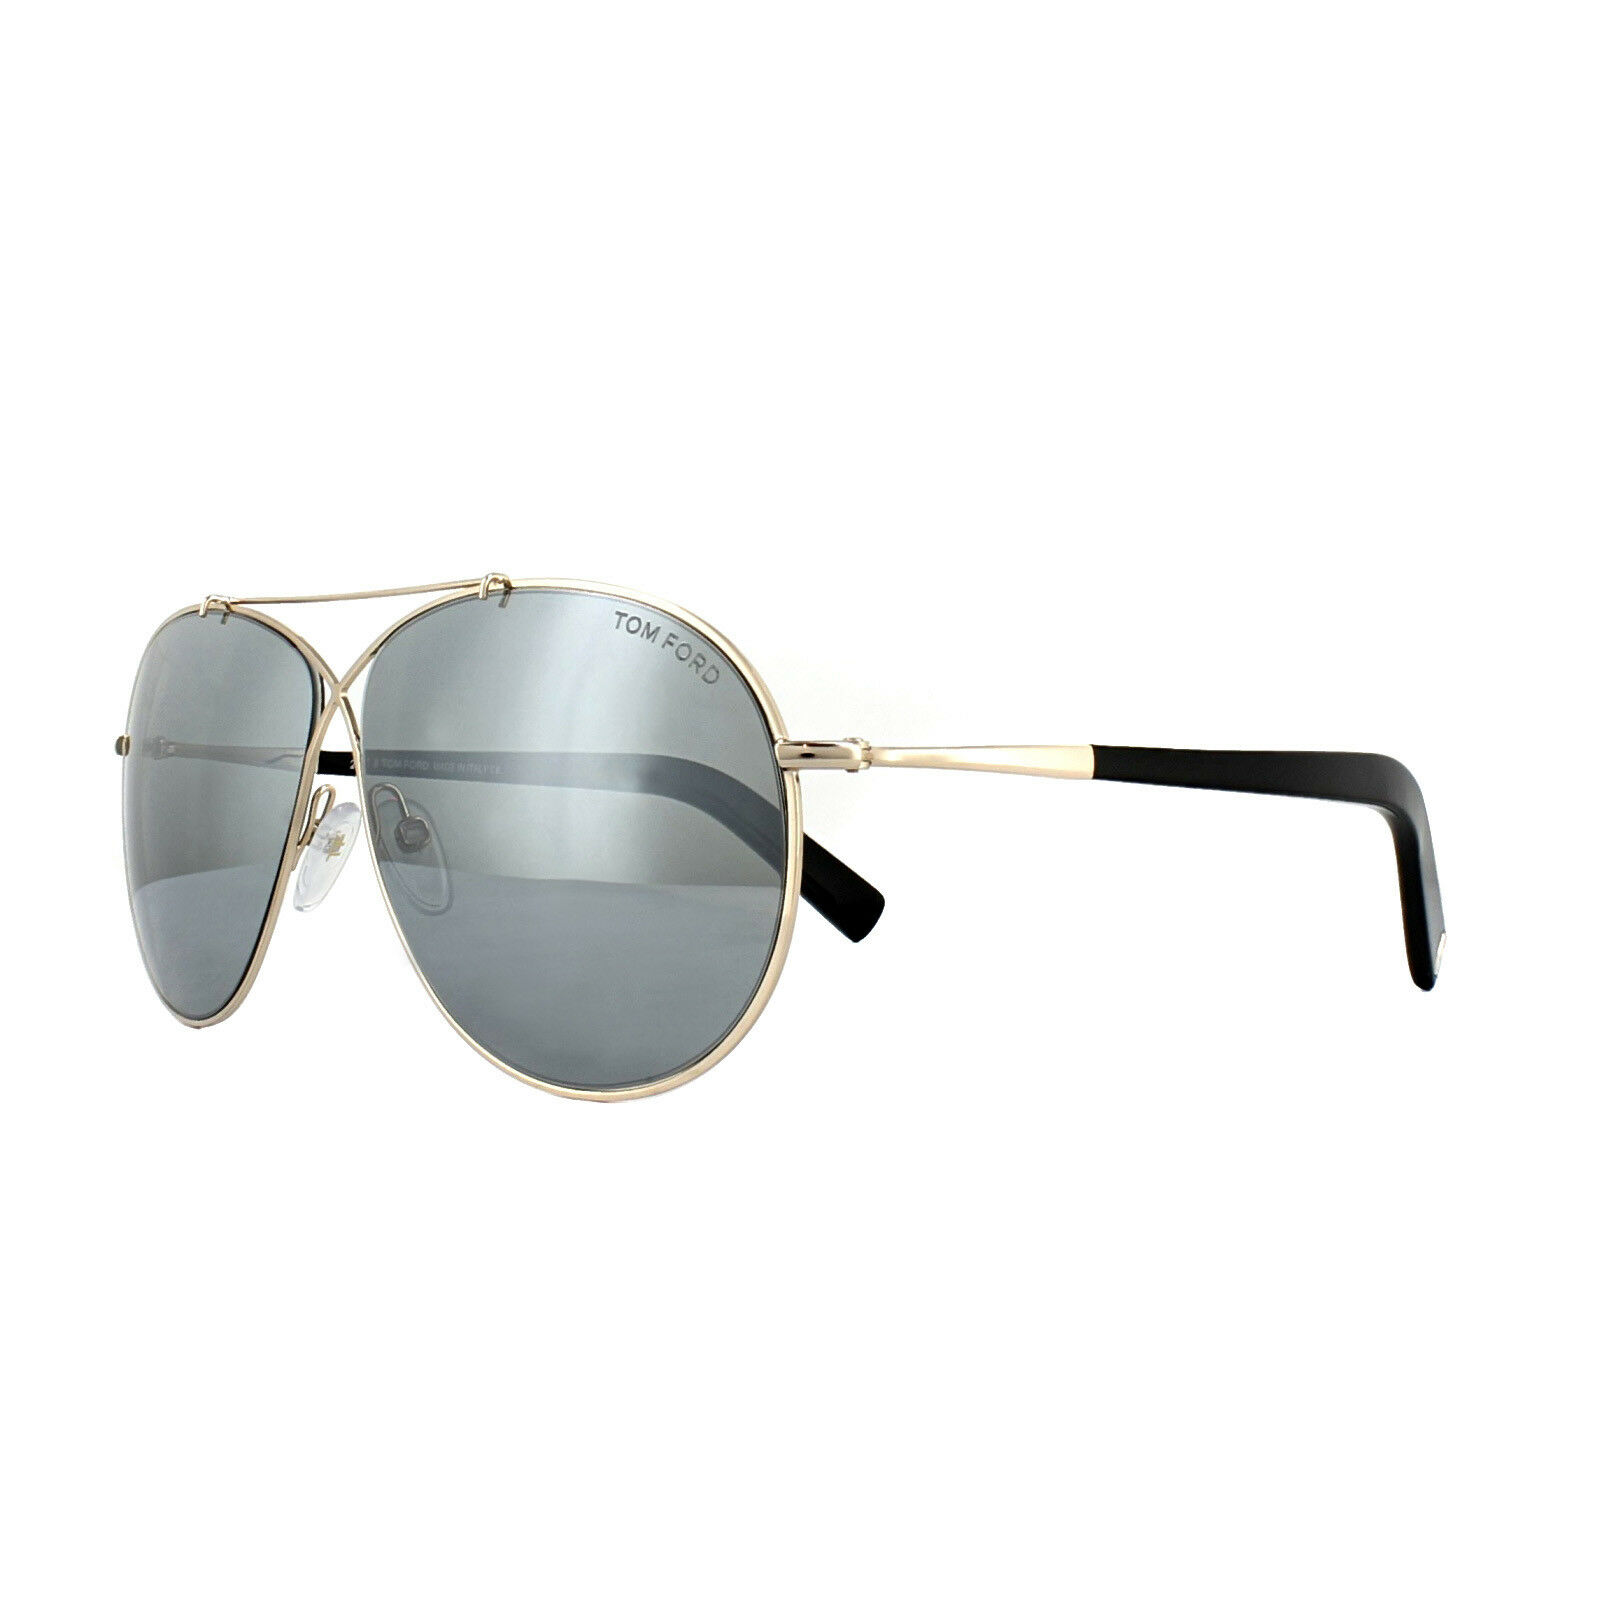 162f0936e27b3 ... 61 UPC 664689646494 product image for Tom Ford Sunglasses 0374 Eva 28q  Shiny Rose Gold Green Mirror